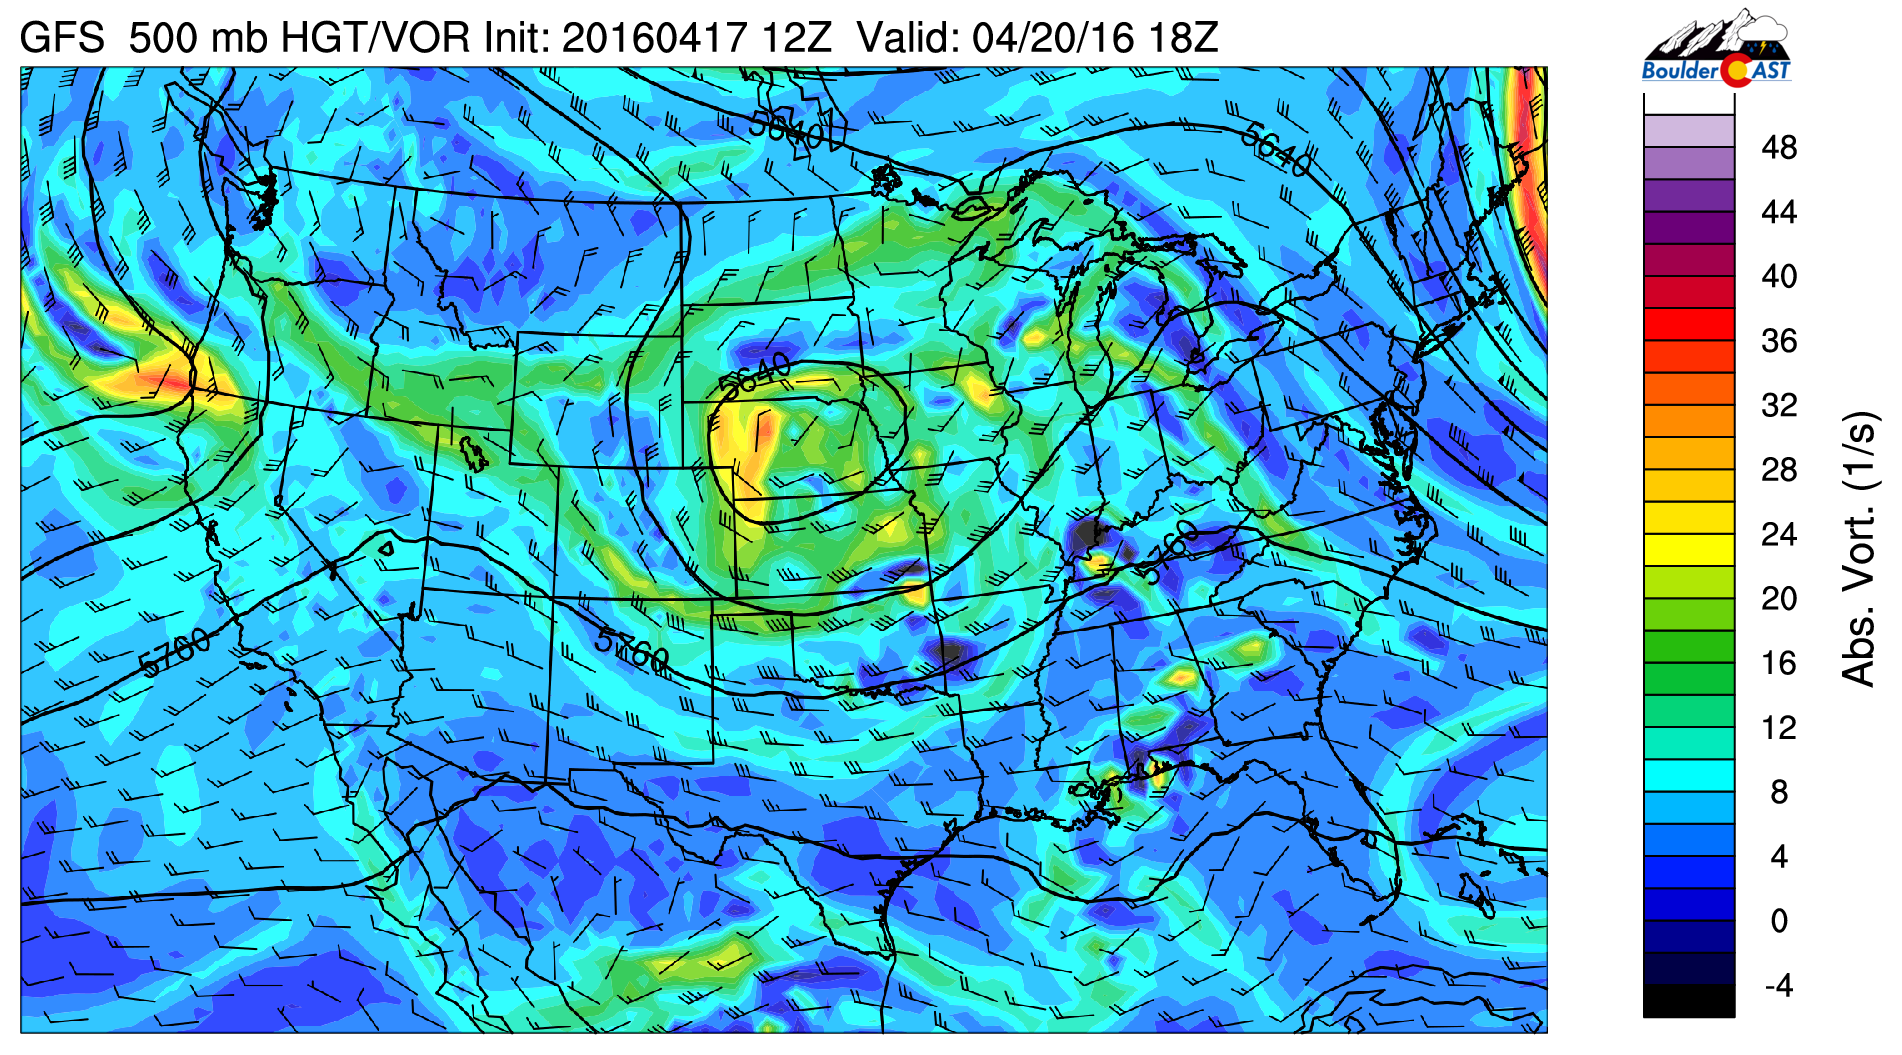 GFS 500 mb vorticity for Wednesday